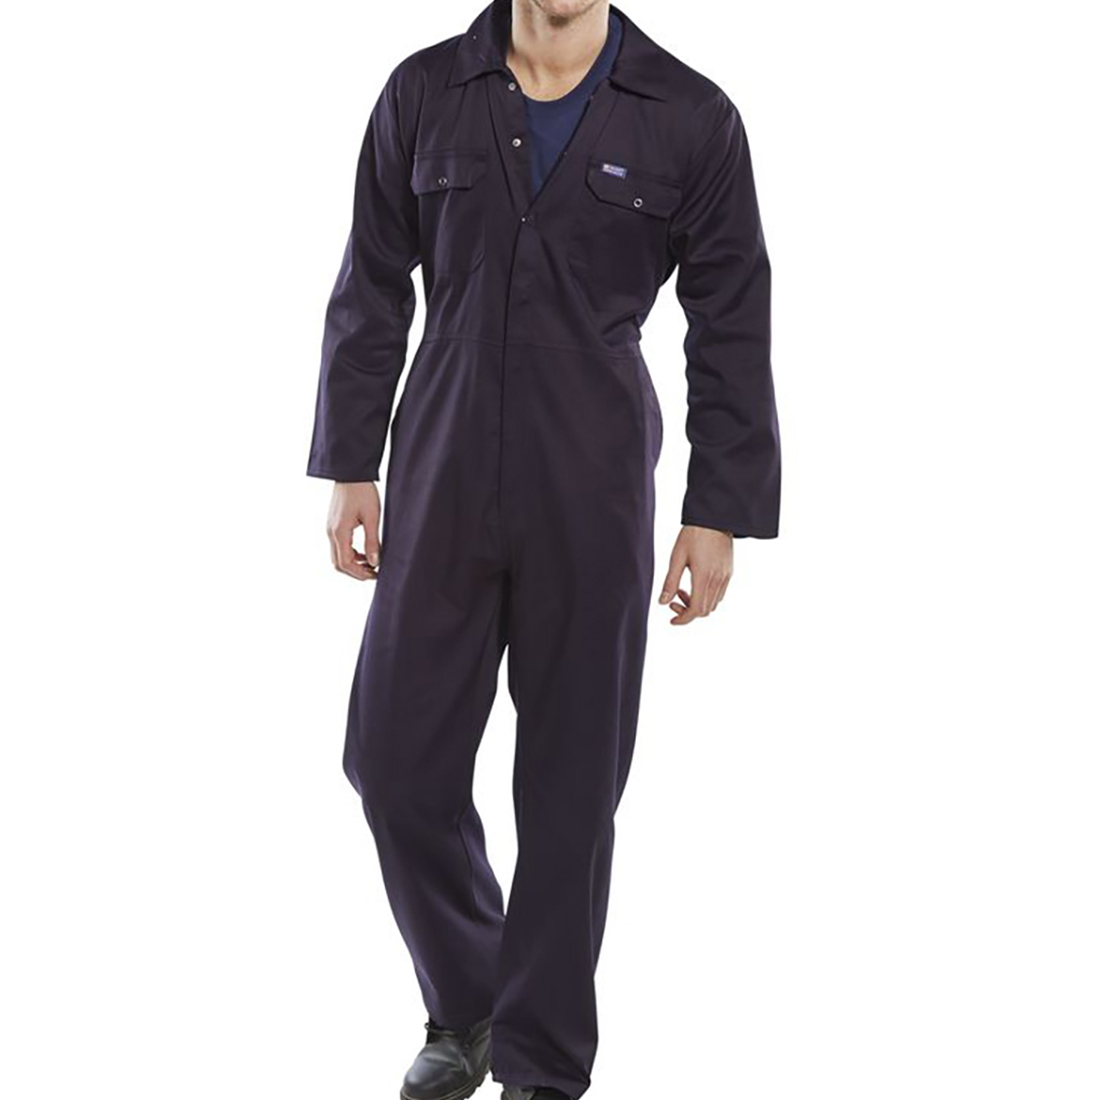 Coveralls / Overalls Coverall Basic with Popper Front Opening Polycotton Small Navy Ref RPCBSN38 *Approx 3 Day Leadtime*